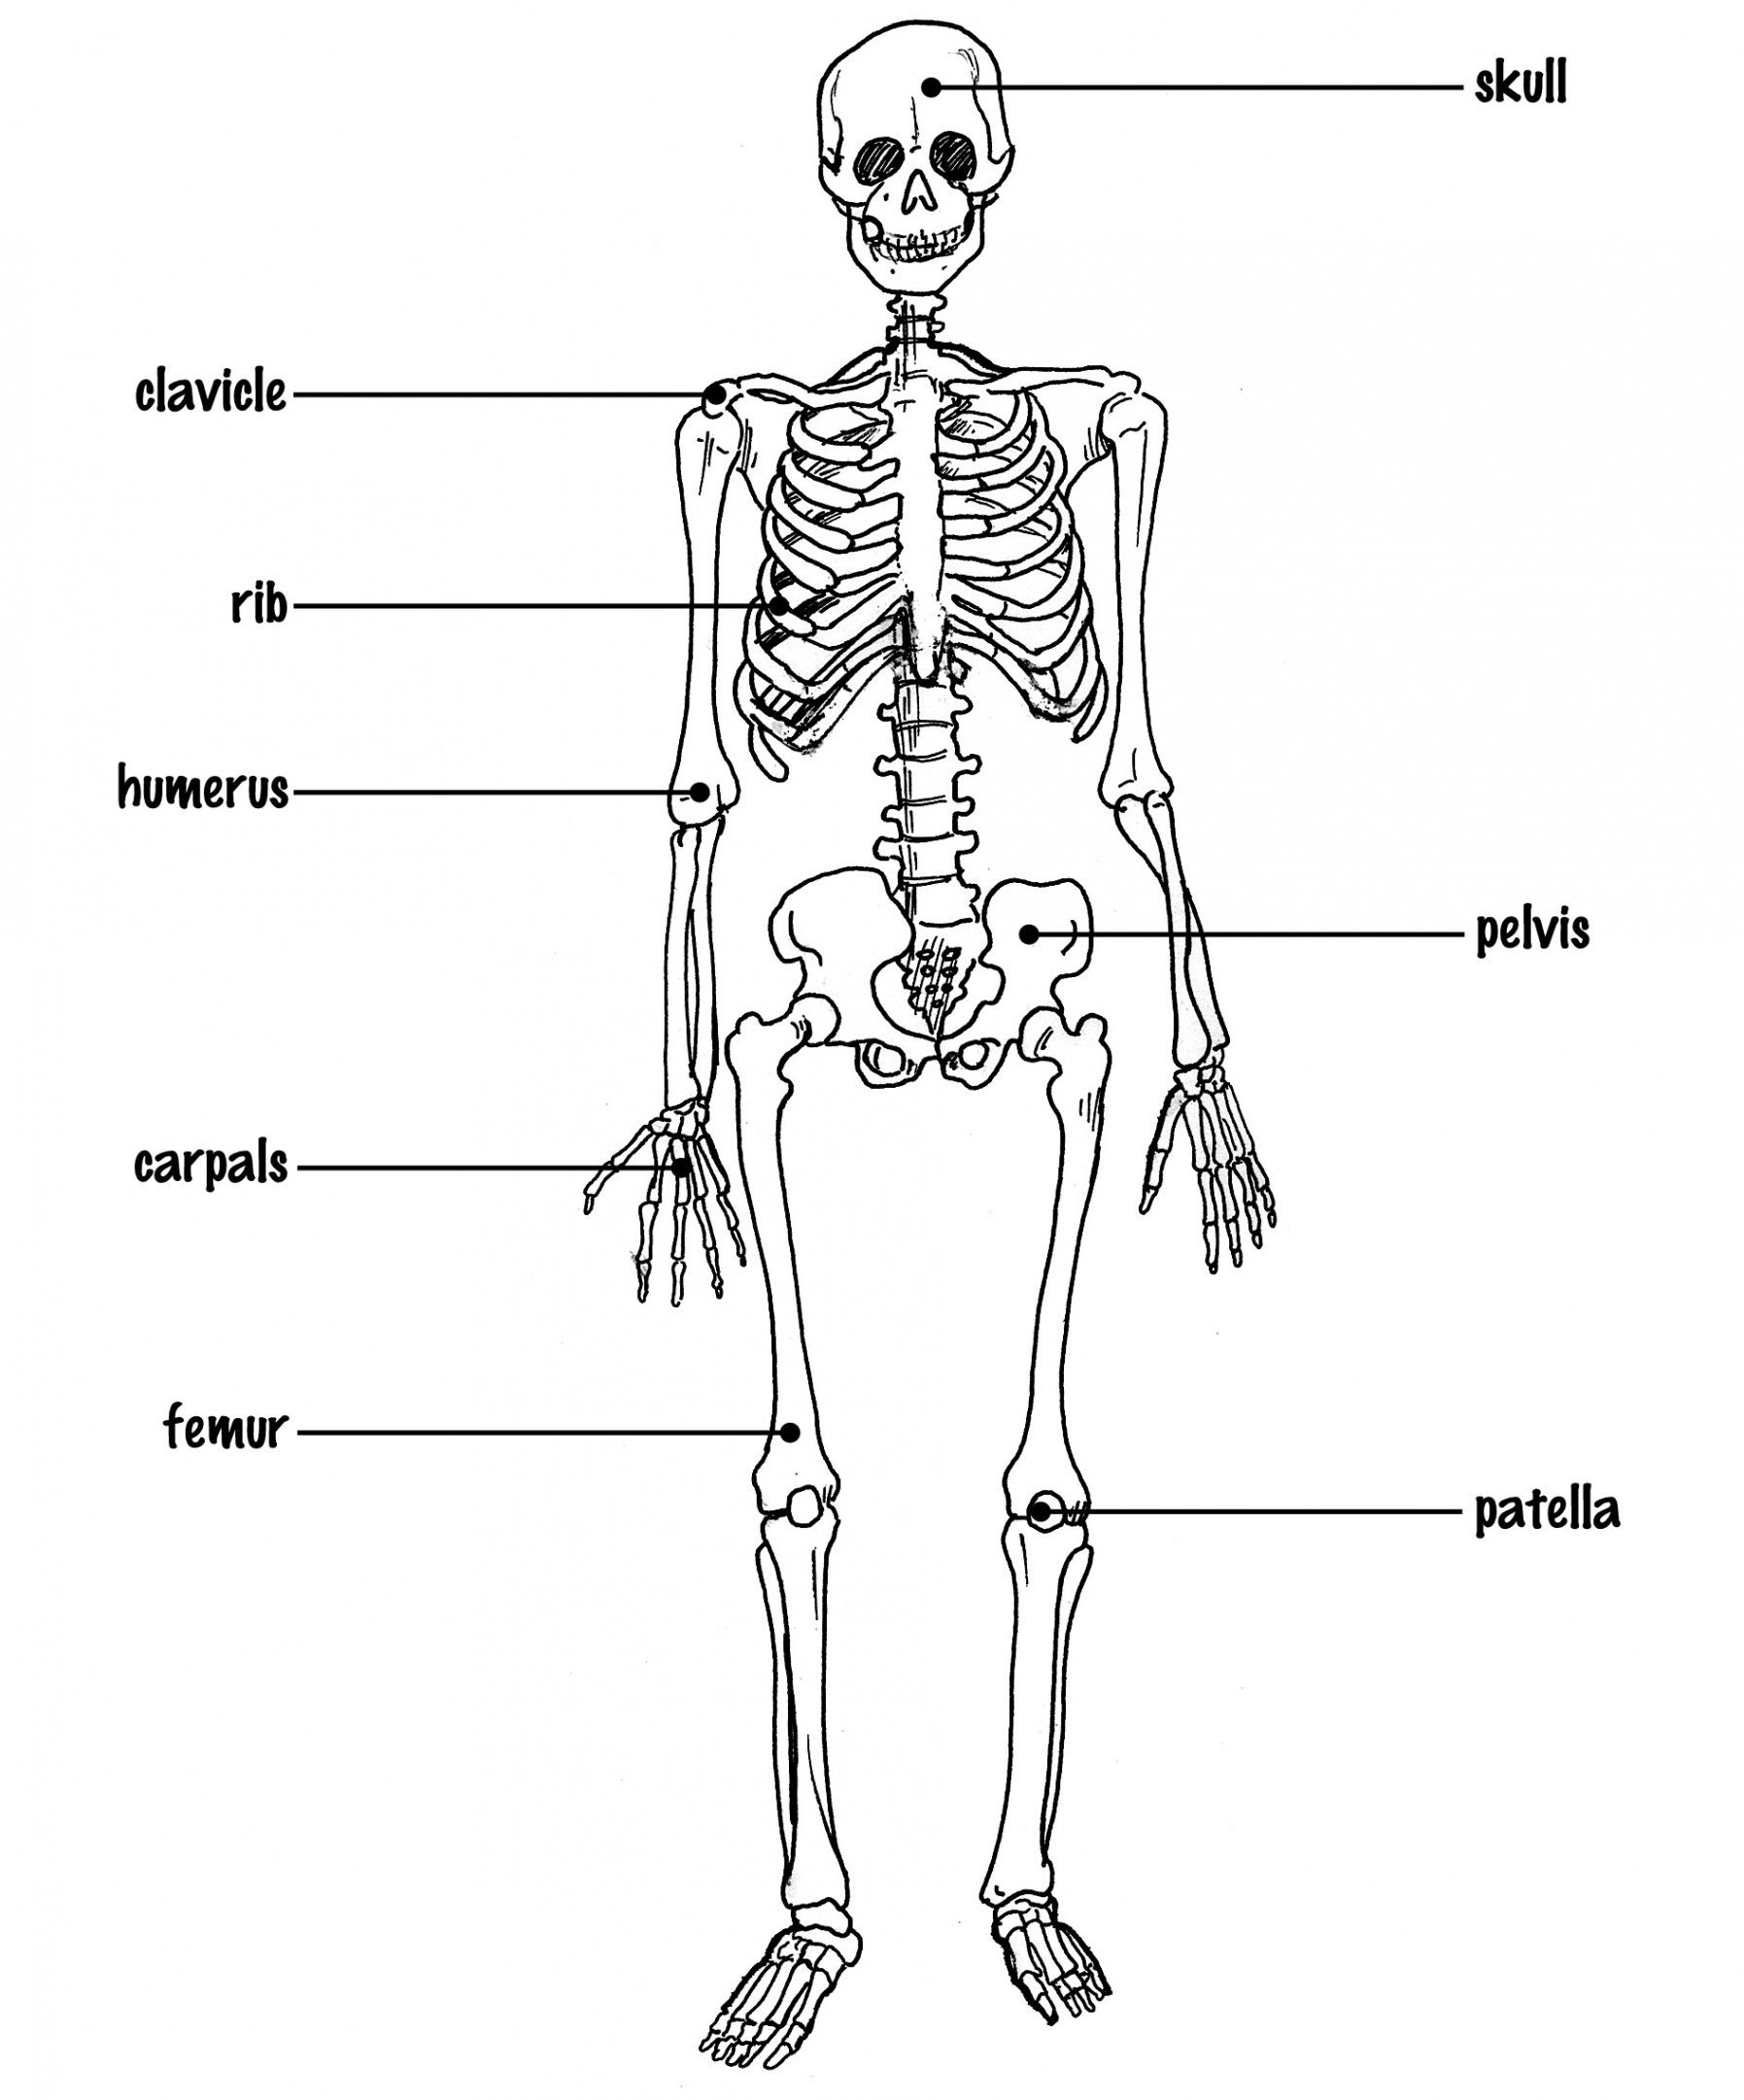 Unlabeled Human Skeleton Diagram Unlabeled Human Skeleton Diagram Blank Human Skeleton Stream